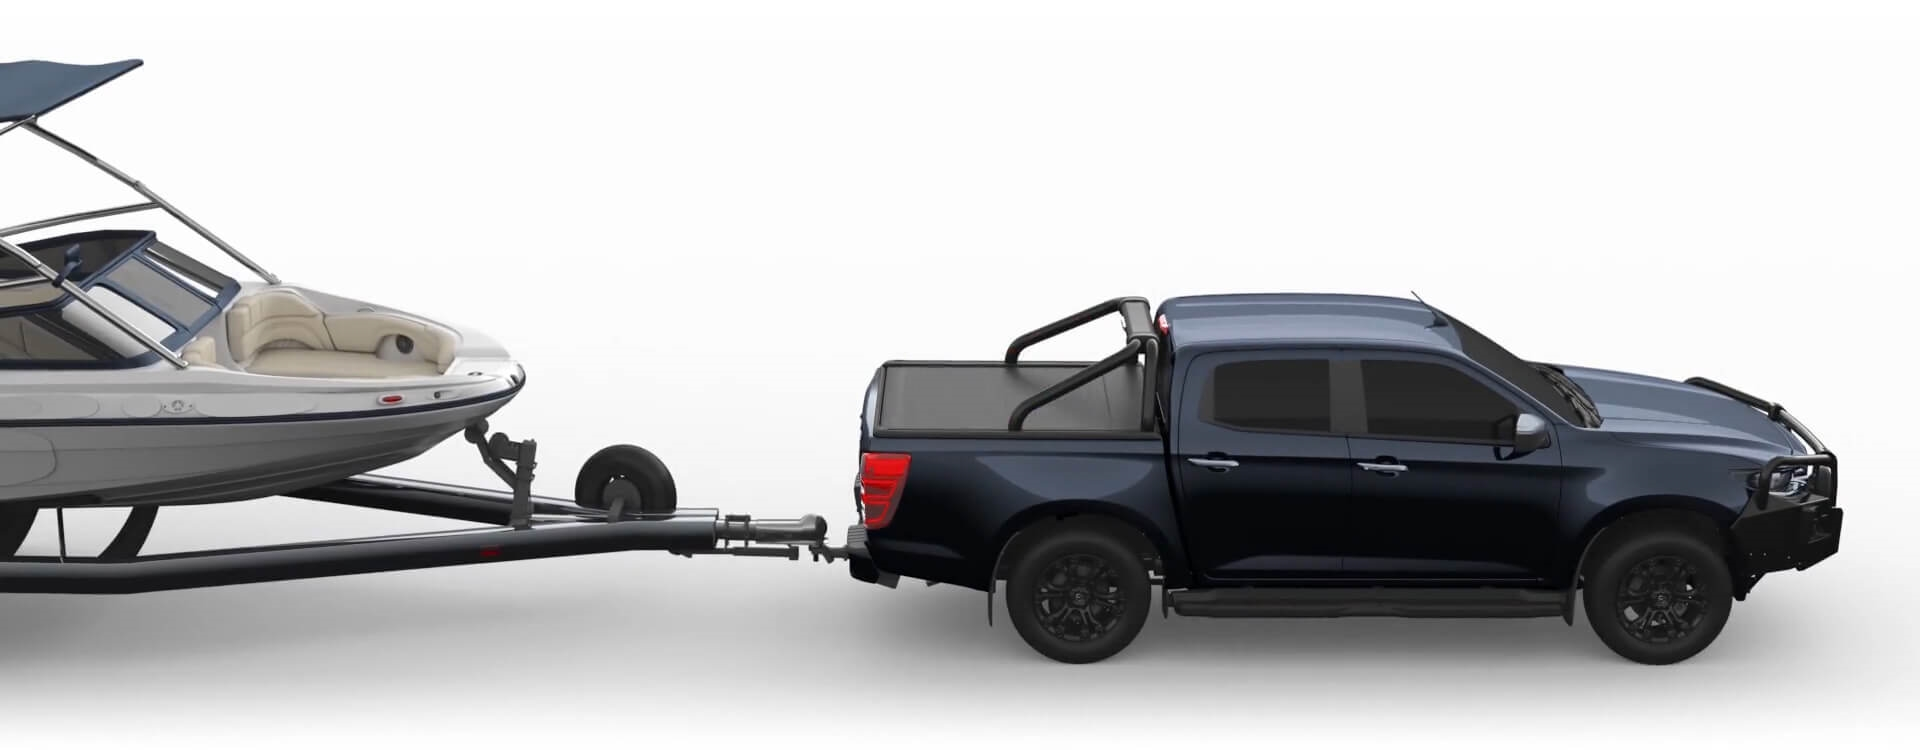 Mazda BT-50 Payload & Towing